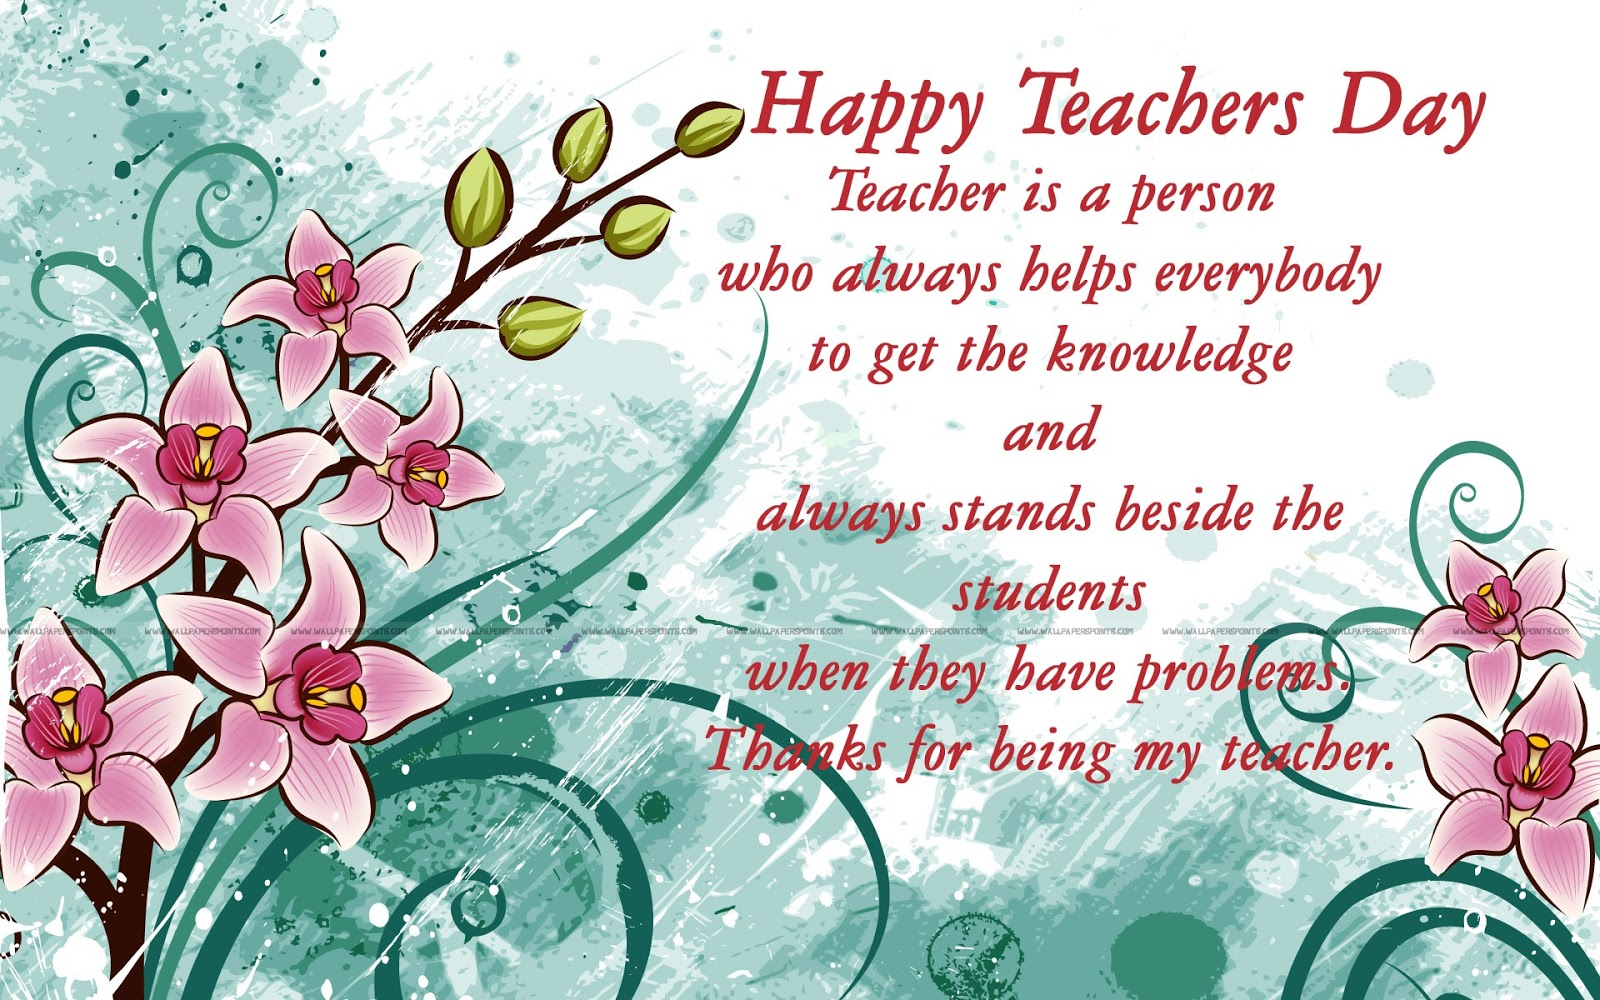 ALL IN ONE WALLPAPERS Teachers Day Wallpapers 1600x1000